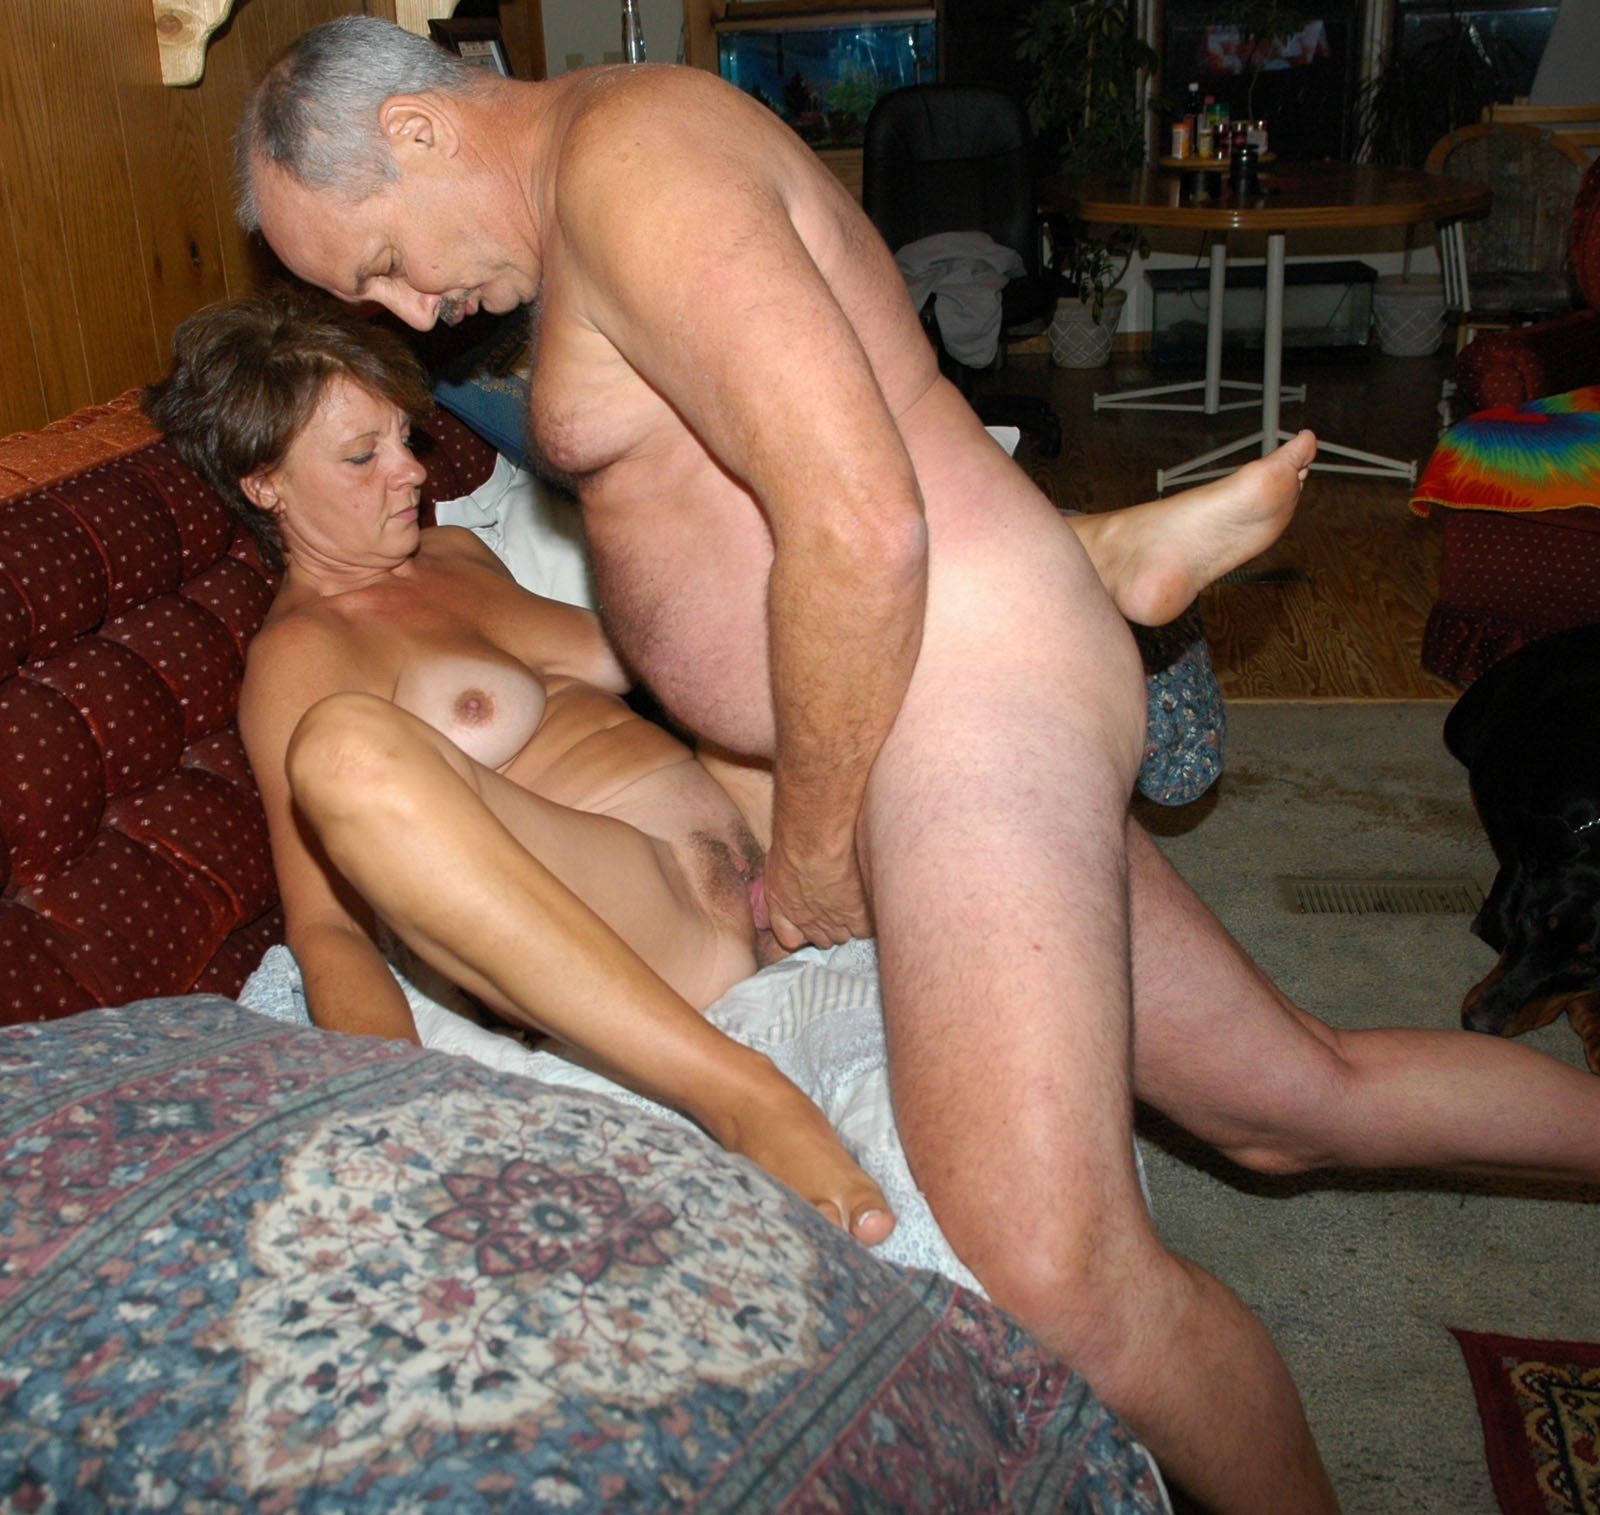 Step mom blowjob son garage